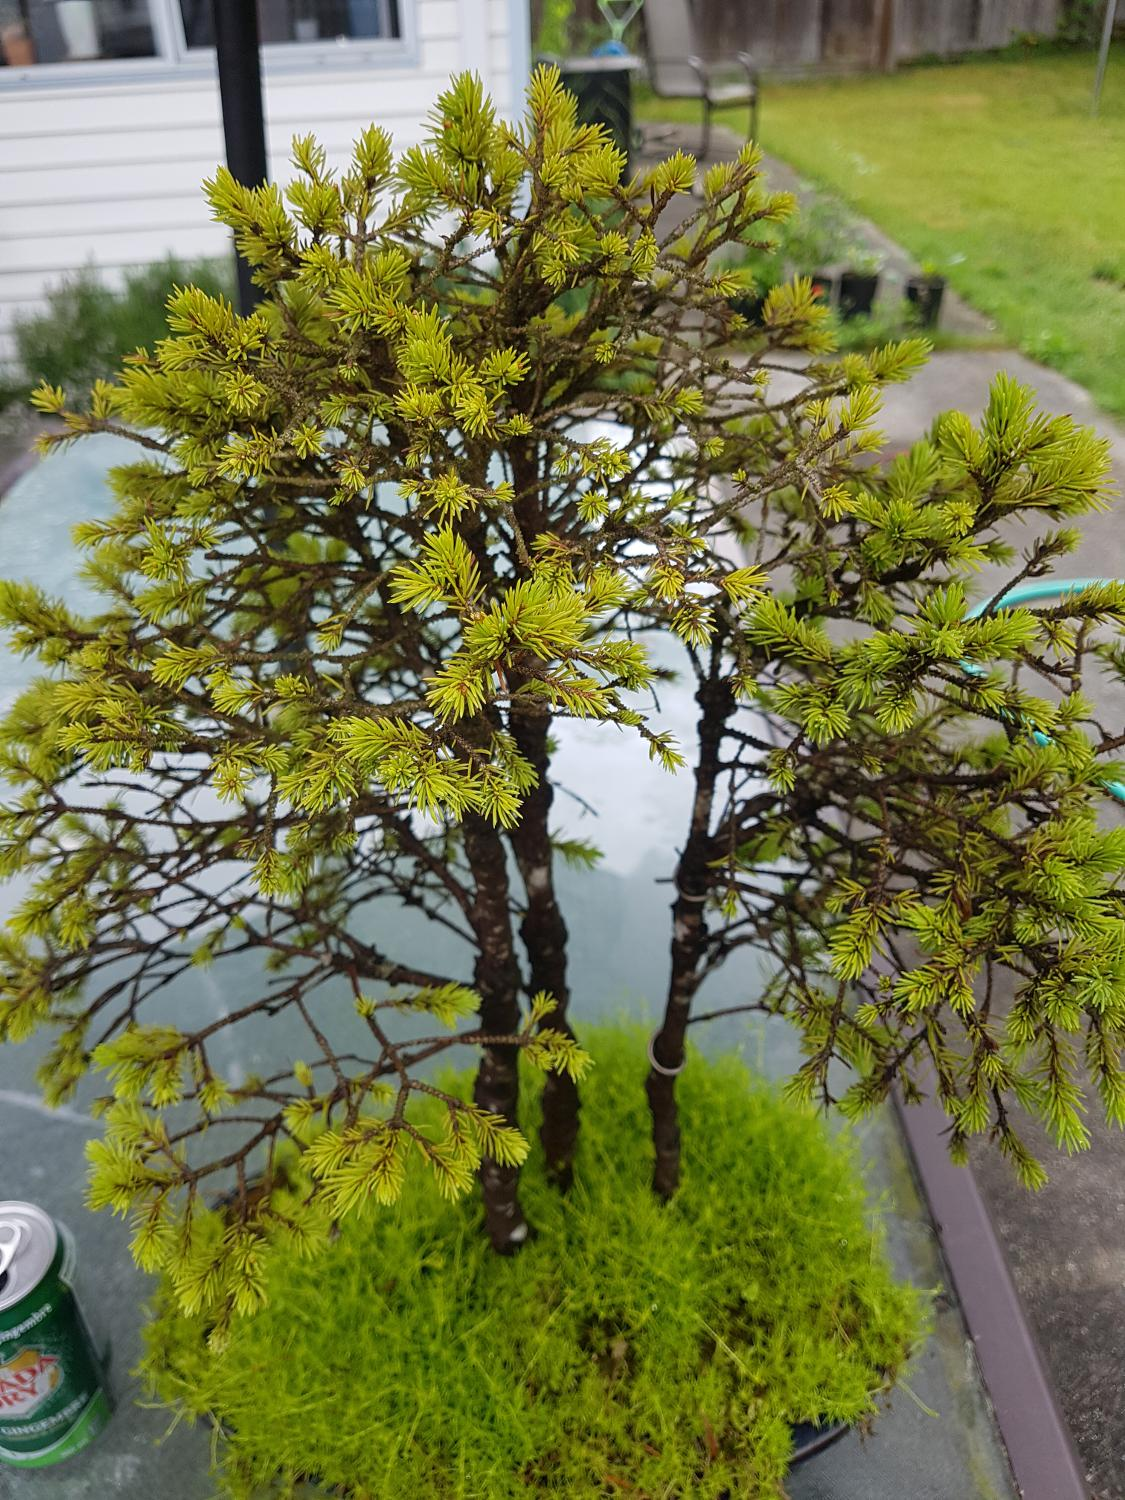 Best Alberta Spruce Bonsai For Sale In Gibsons British Columbia For 2021